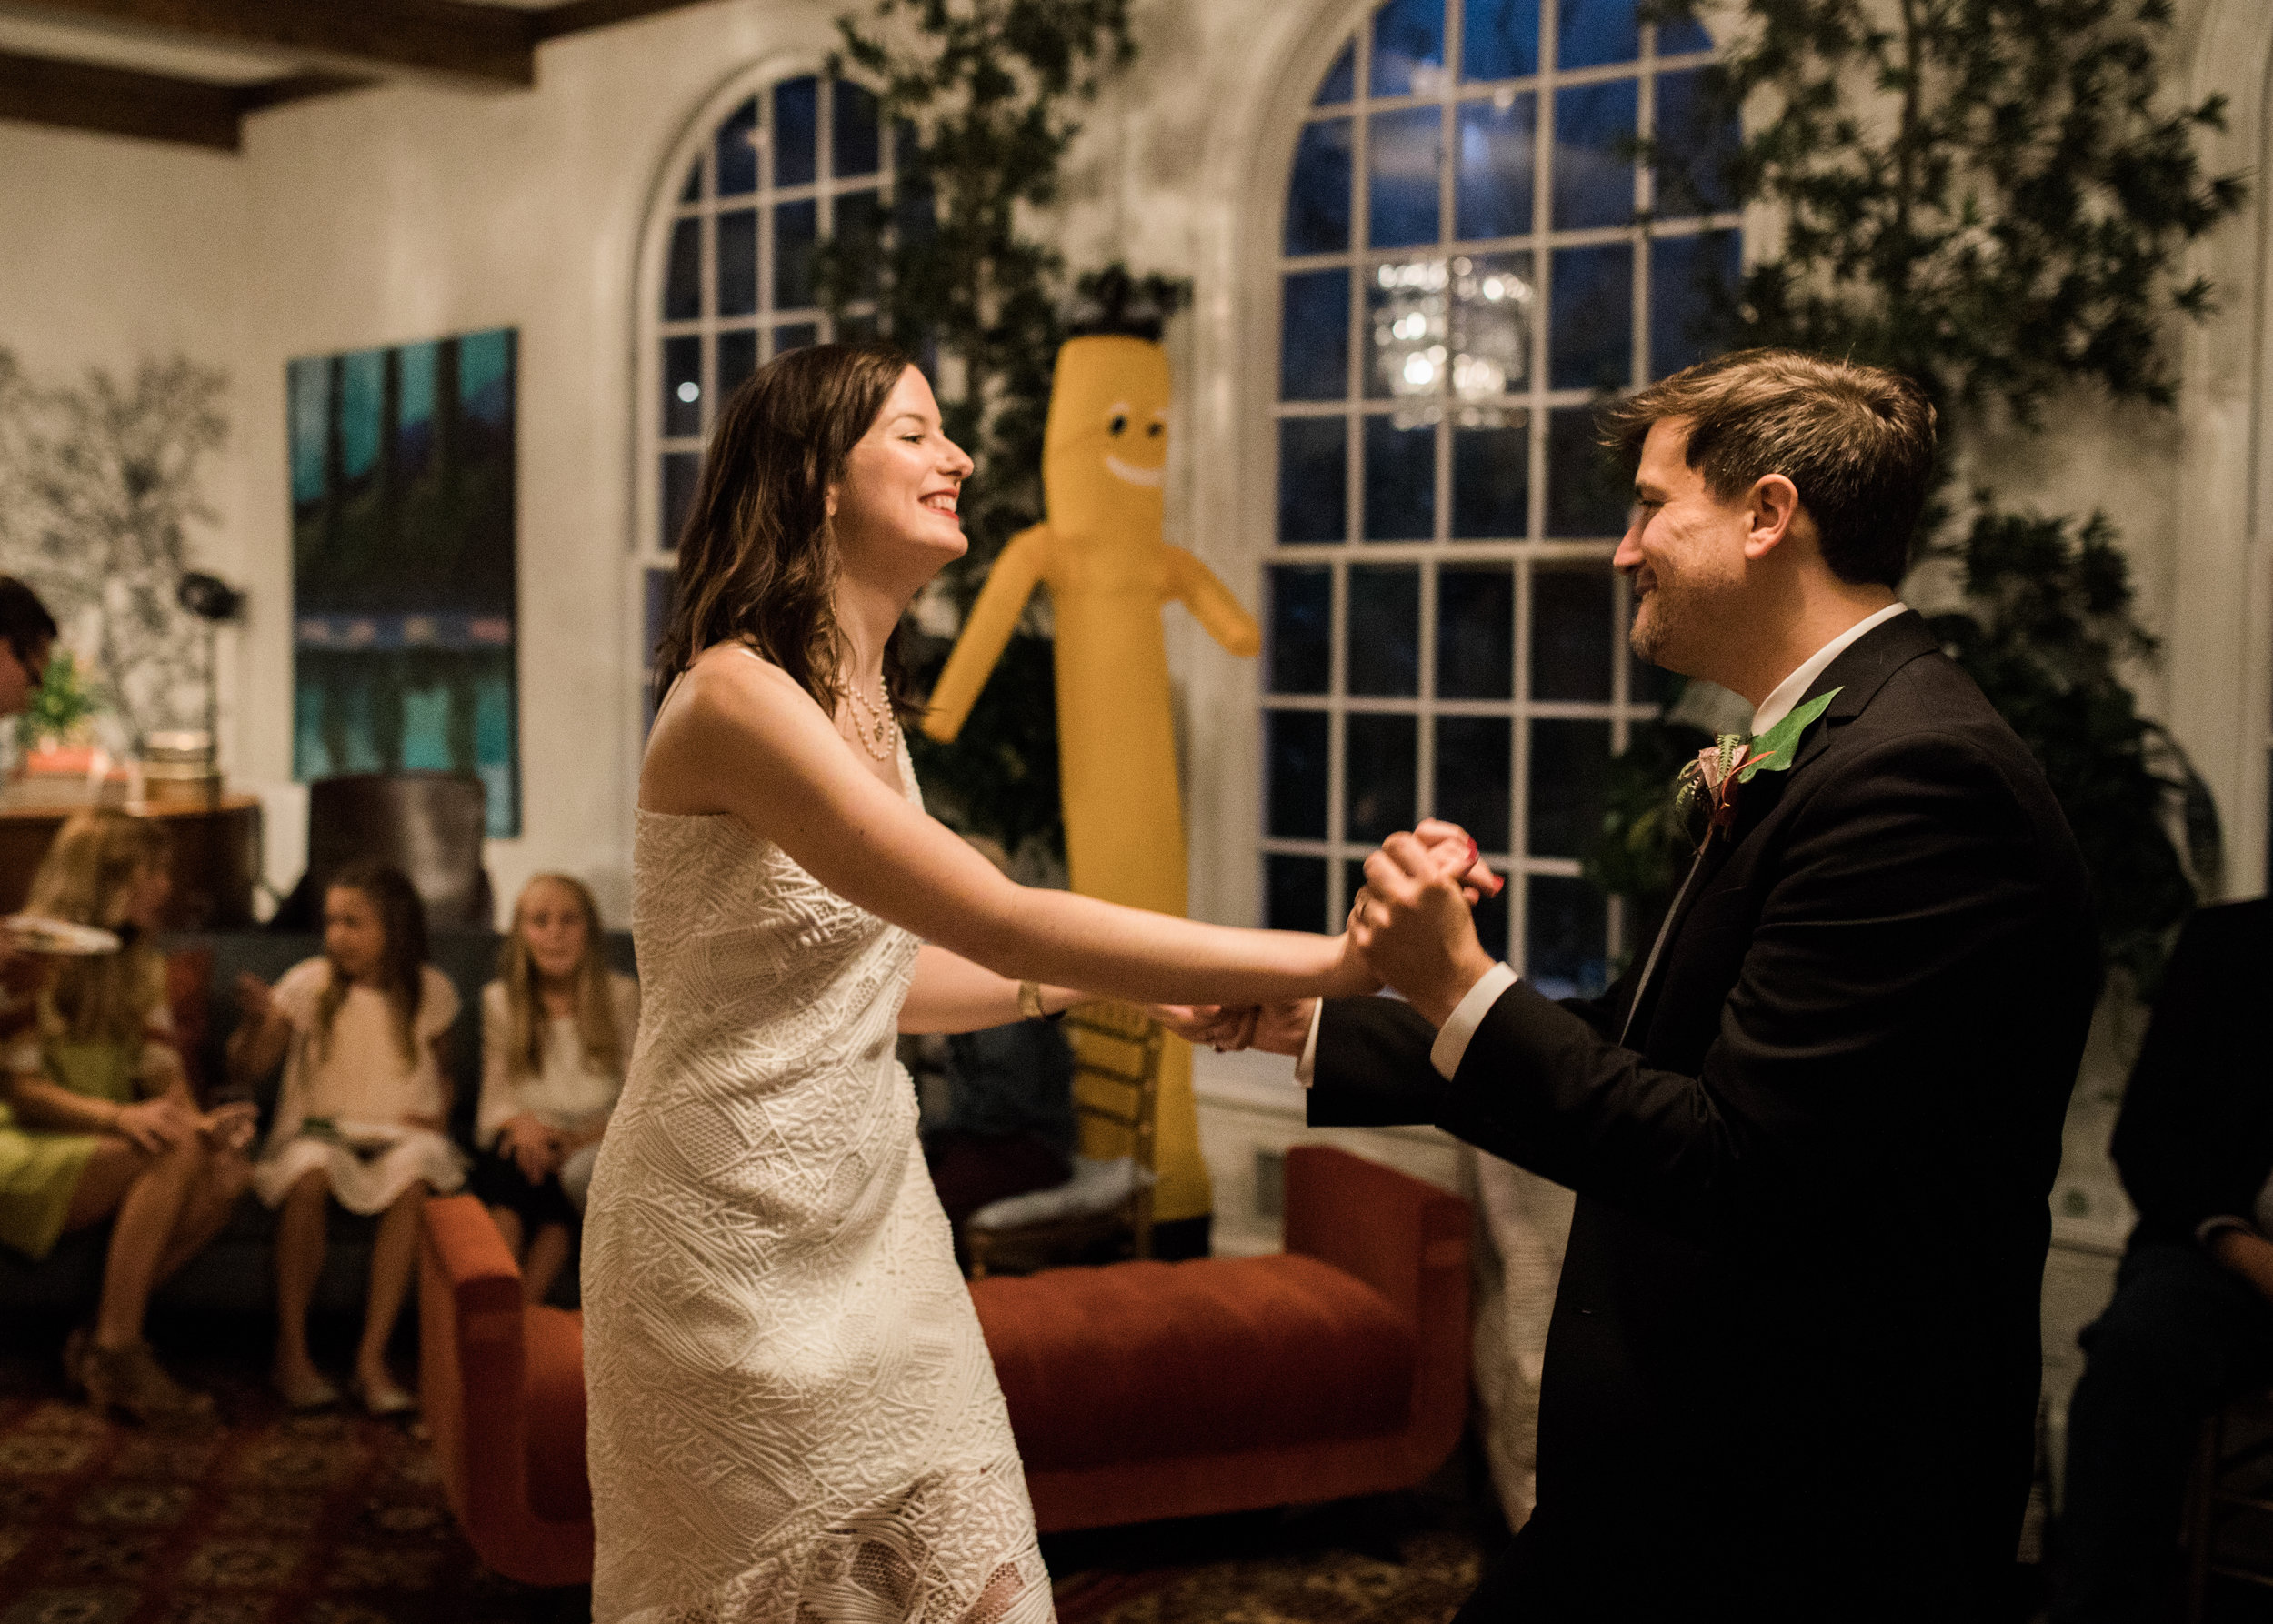 The inflatable dancing man at our wedding at the Edgemont House in North Little Rock, Arkansas, may have been more of a hit than the bride and groom were. Photo by Katie Childs.